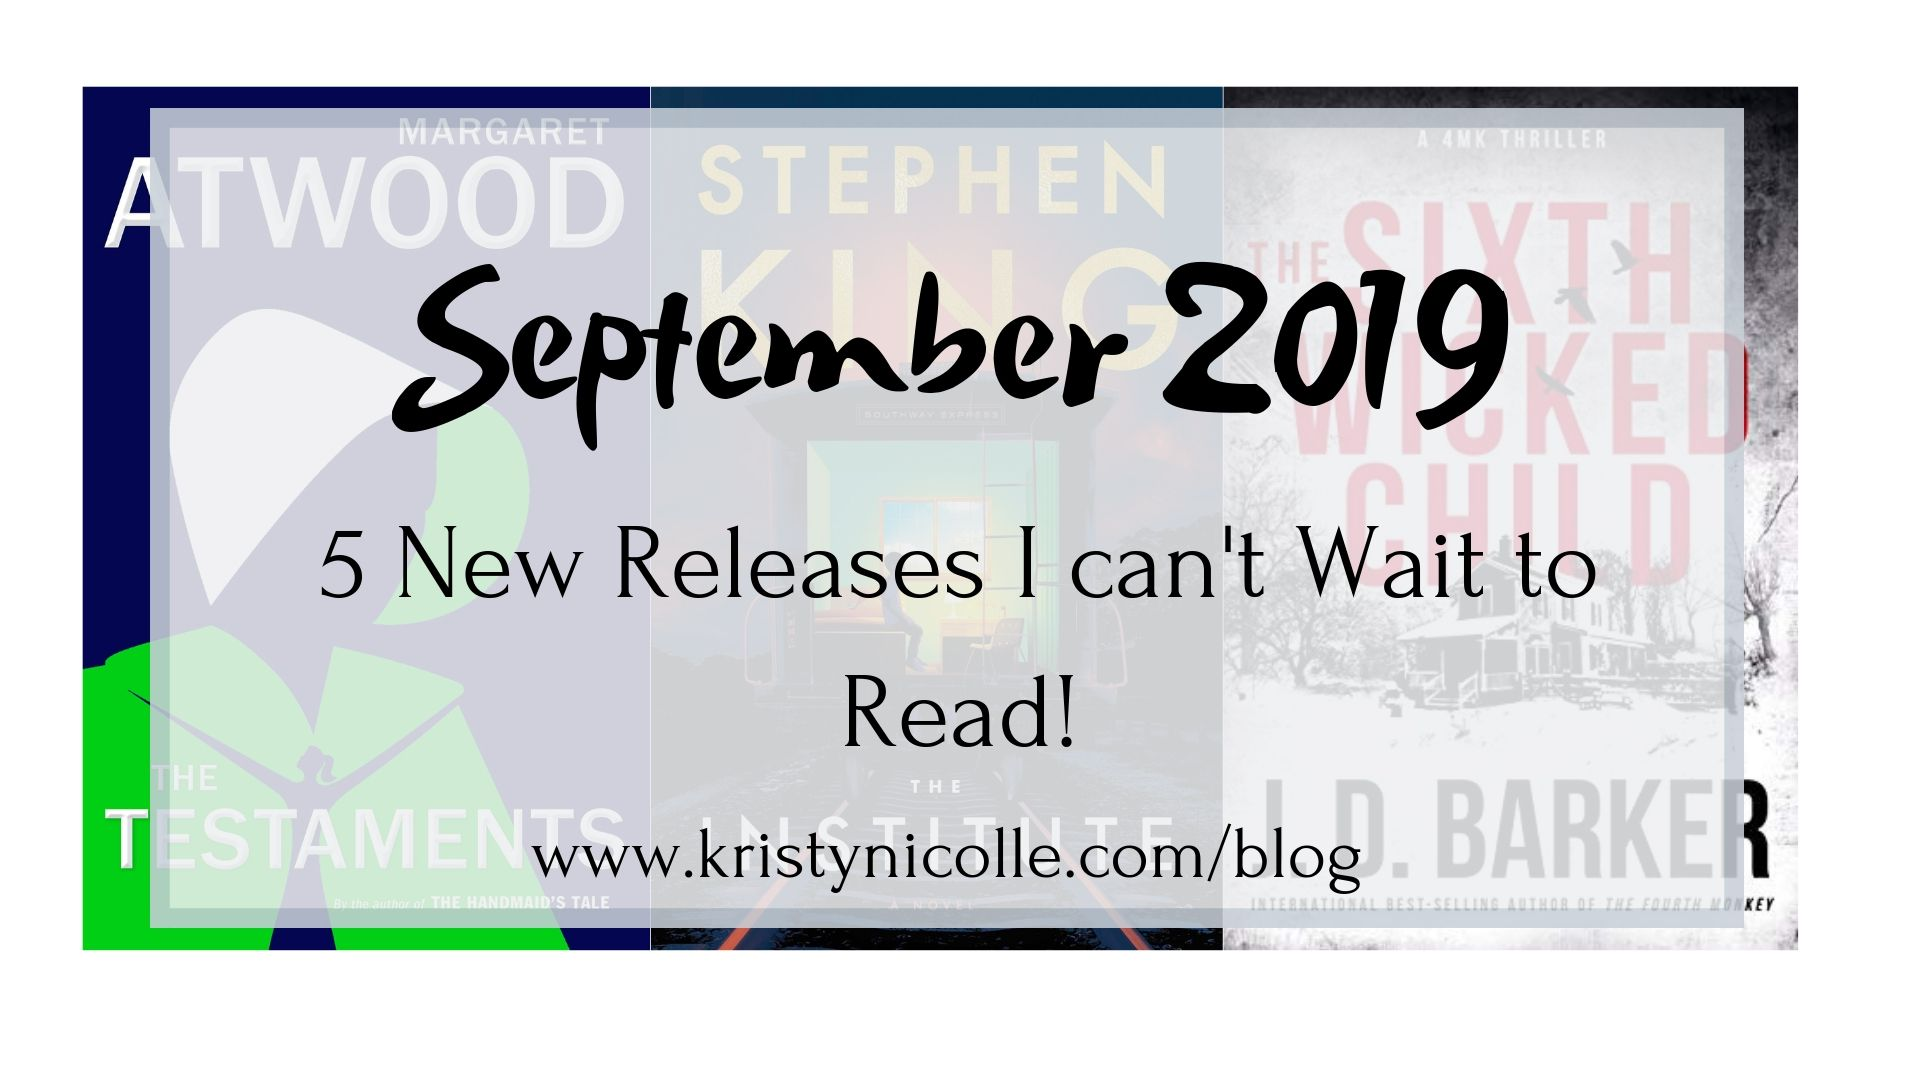 5 New Releases I can't Wait To Read!.jpg